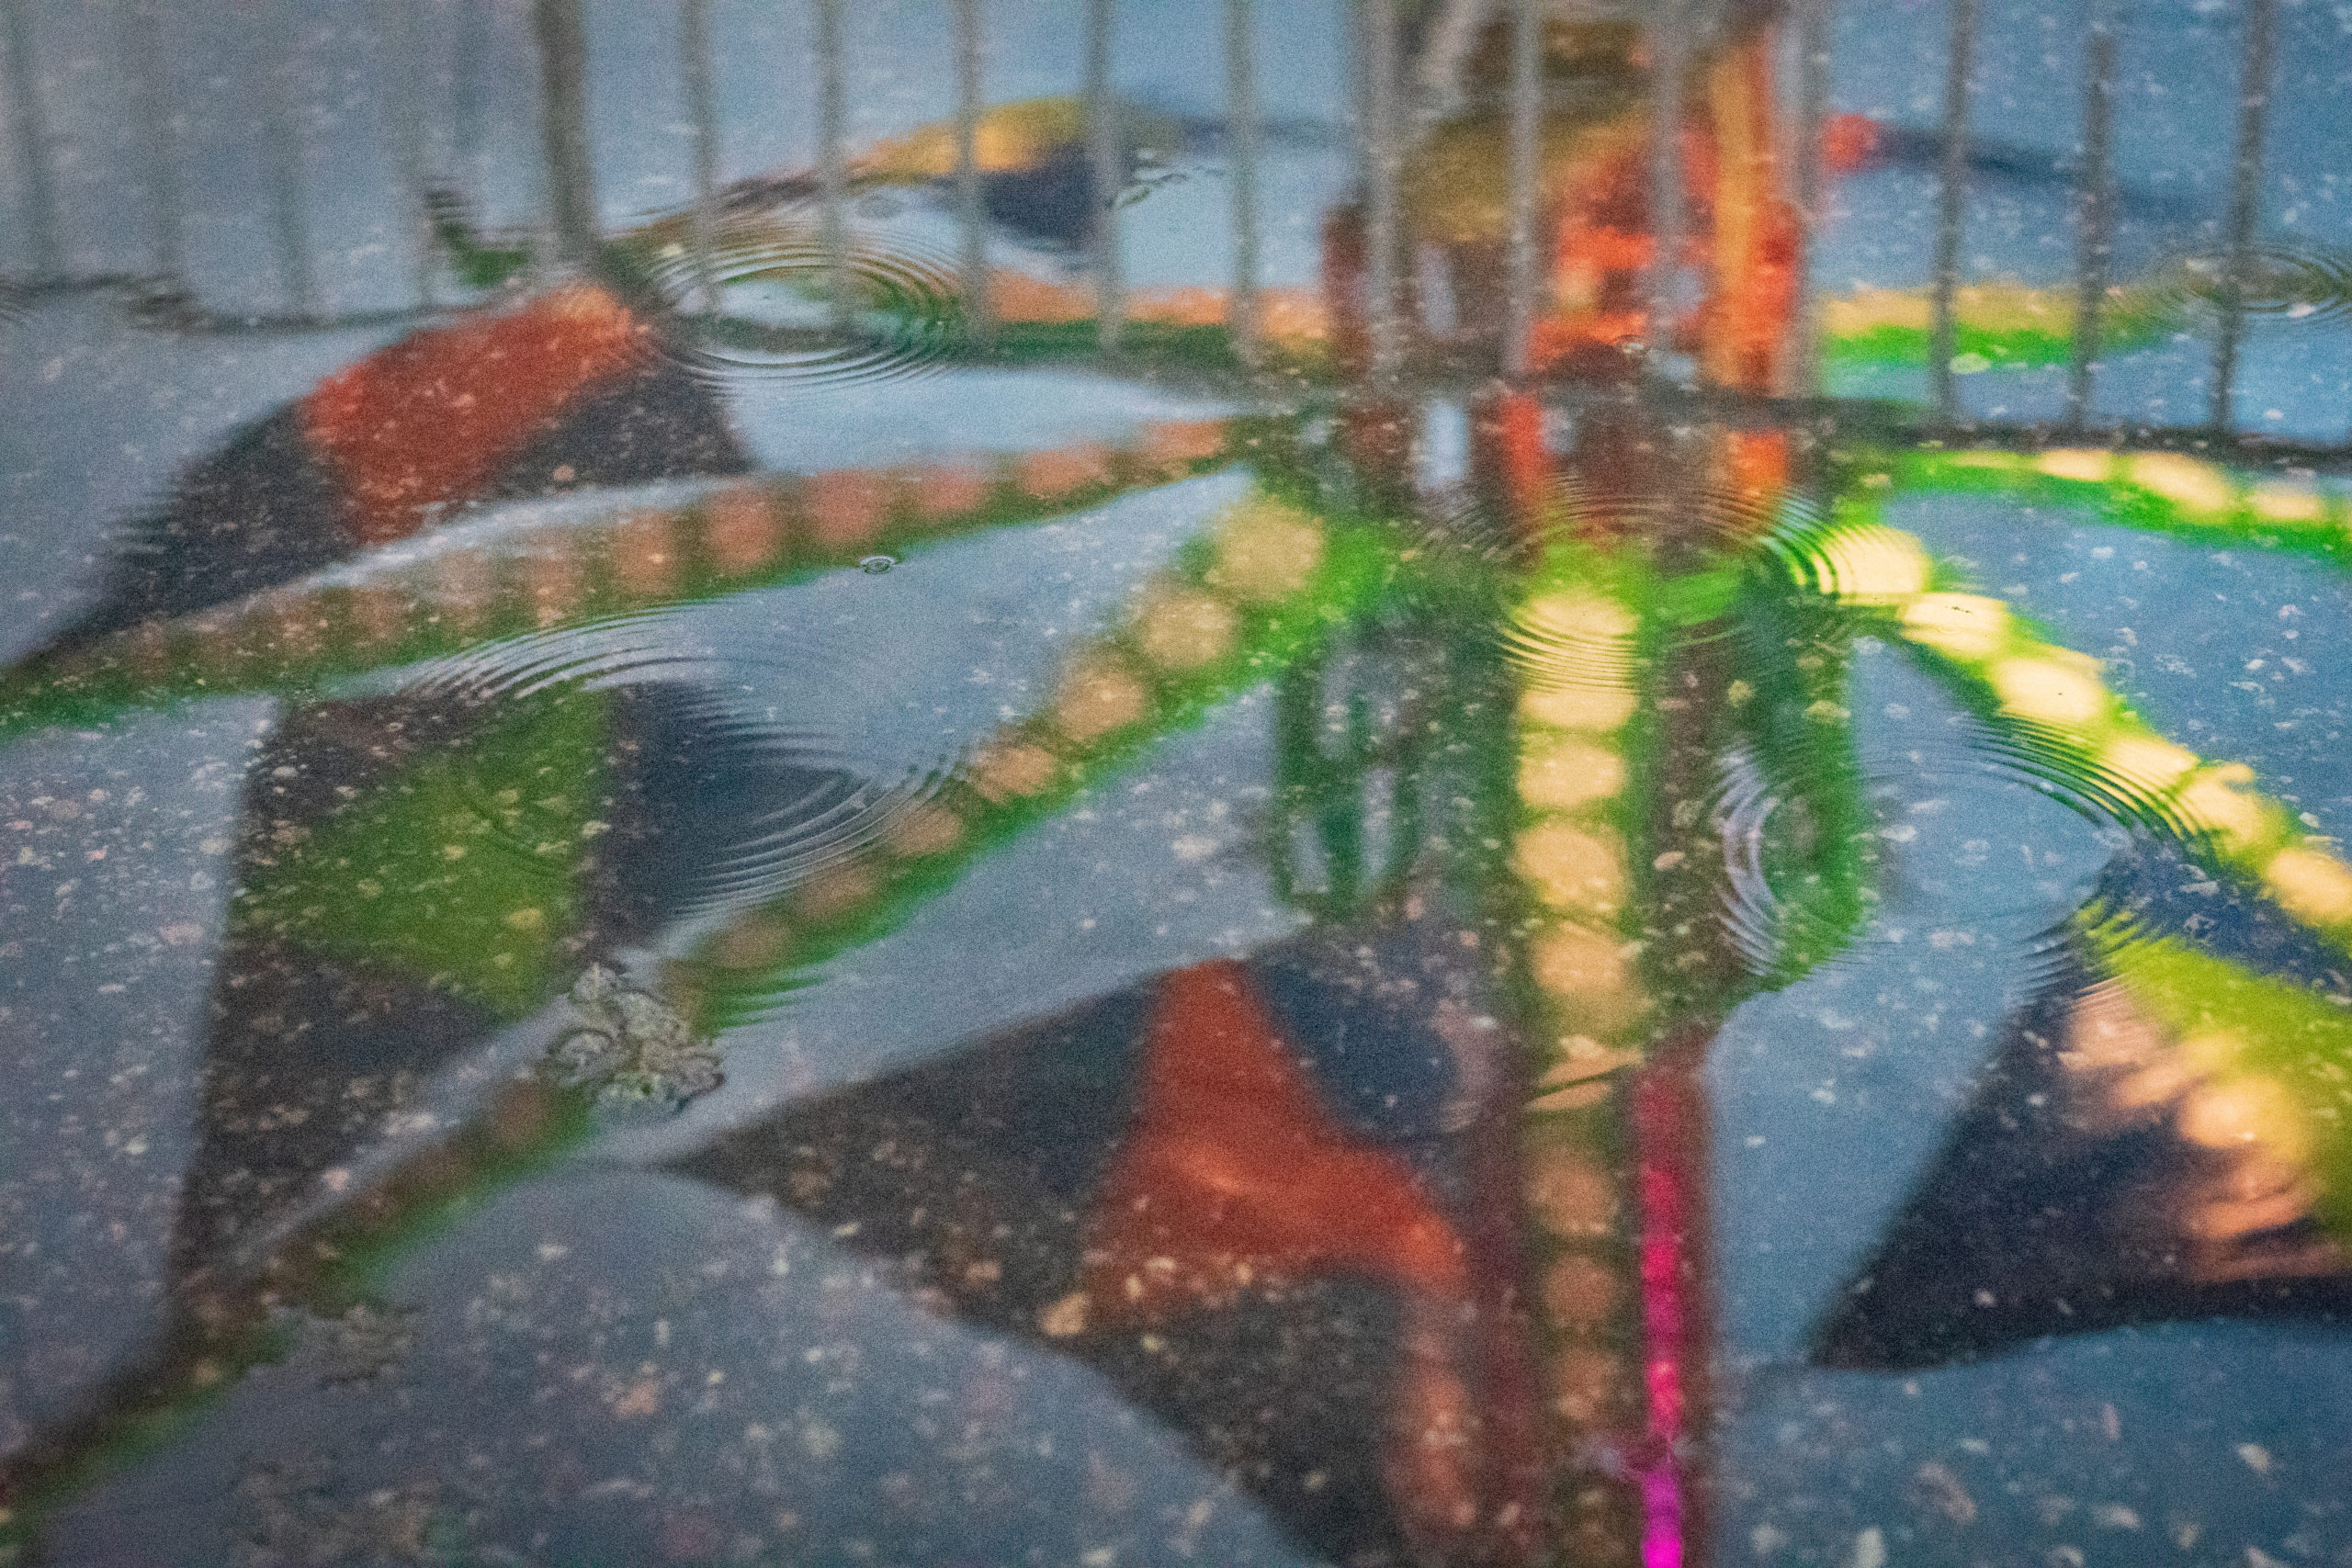 A picture taken of a puddle's reflection of an amusement park ride.